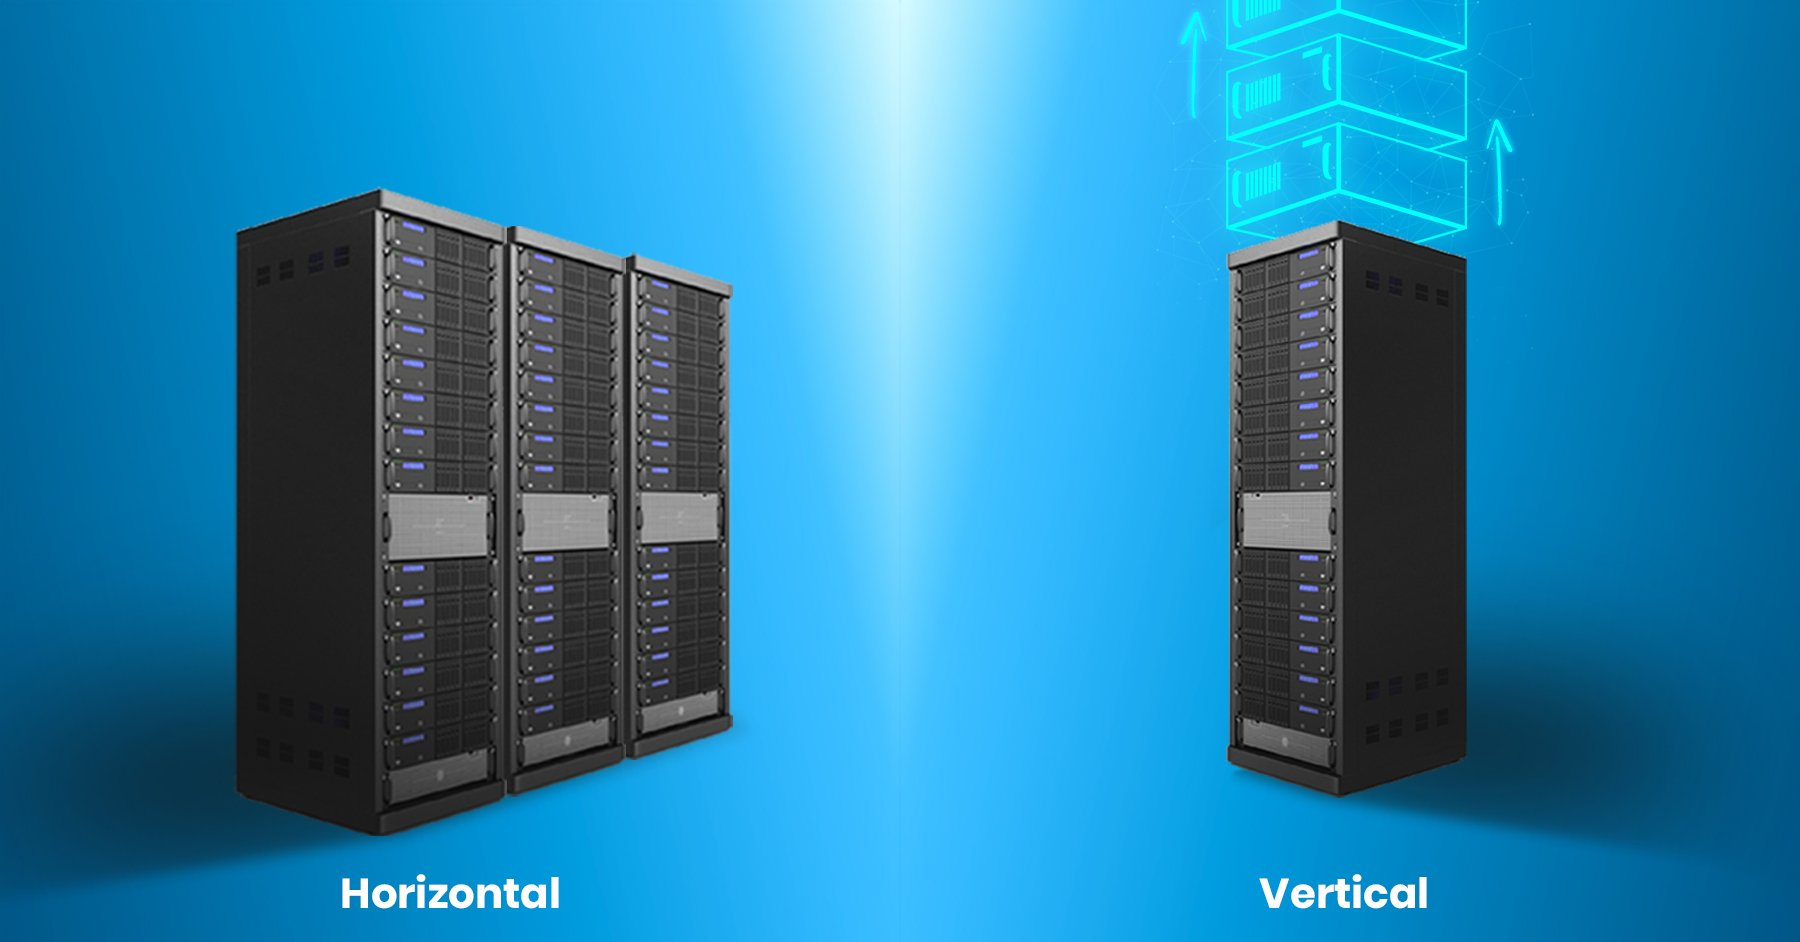 What is the Difference Between Horizontal & Vertical Scaling?